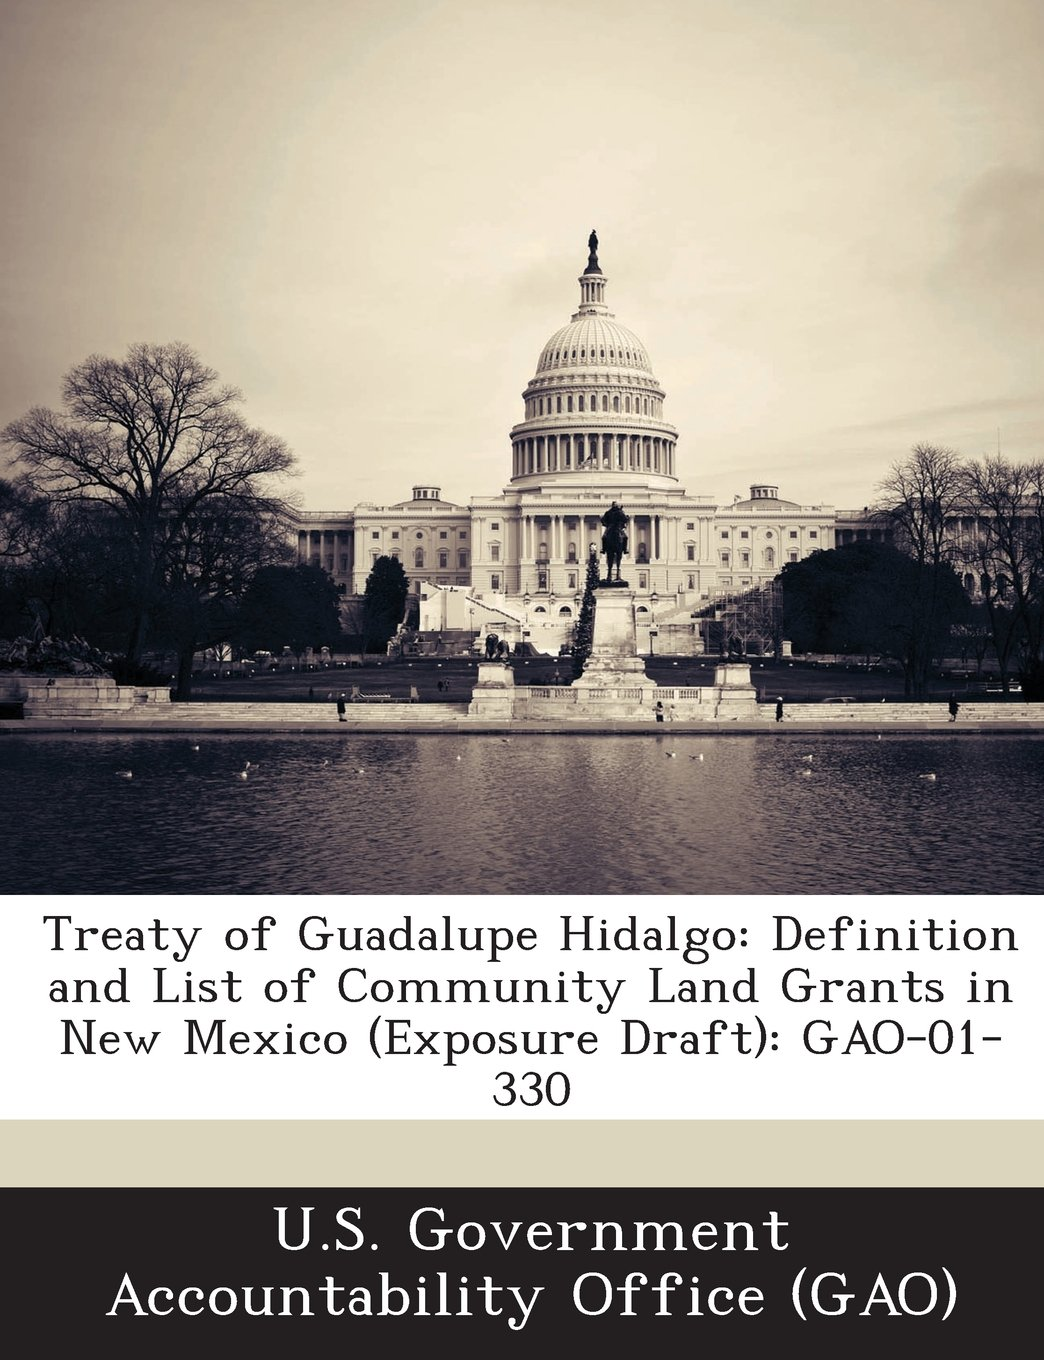 Treaty of Guadalupe Hidalgo: Definition and List of Community Land Grants in New Mexico (Exposure Draft): GAO-01-330 ebook